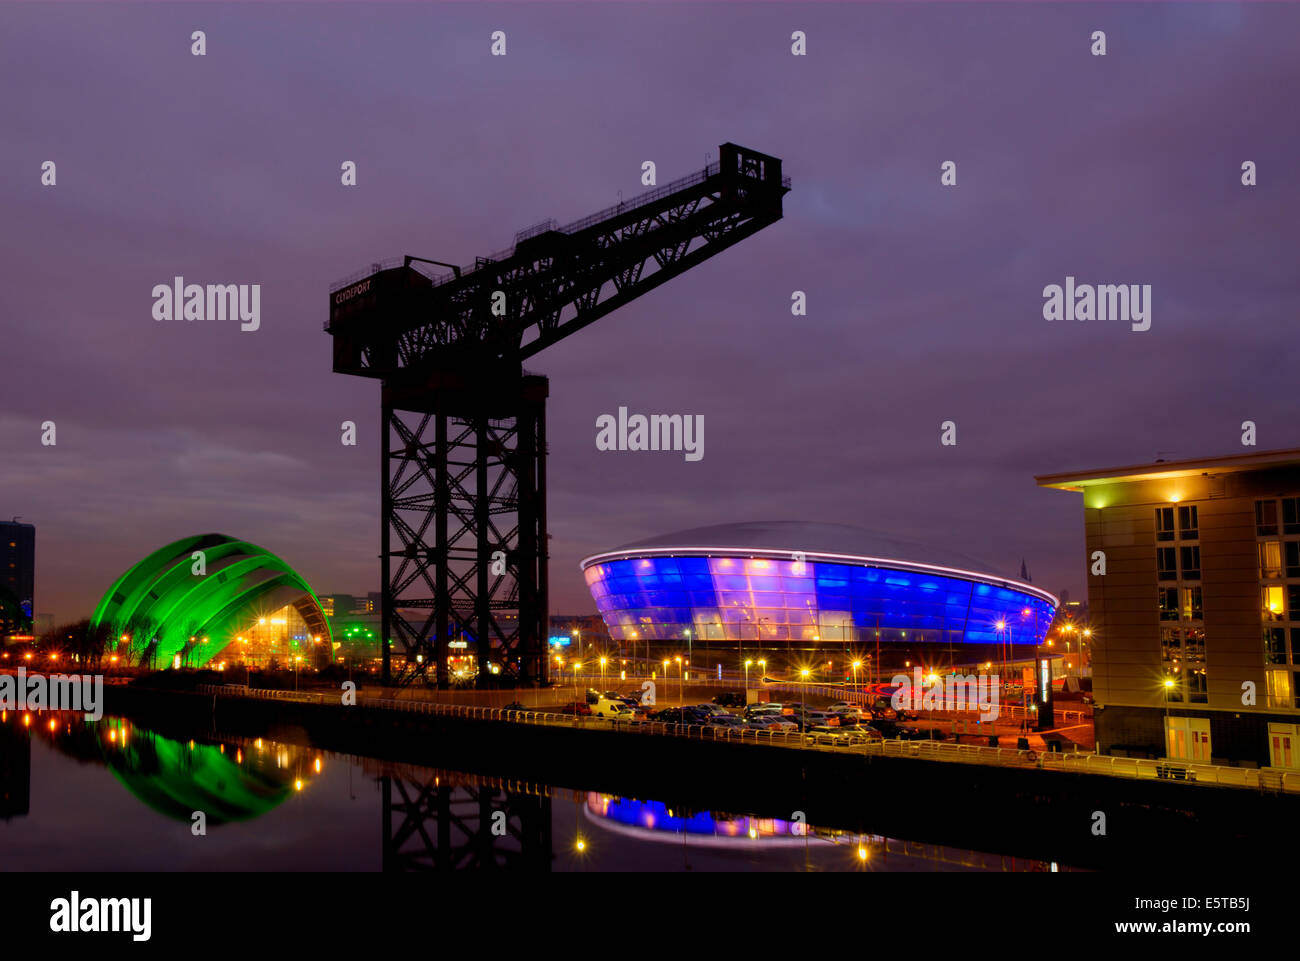 Glasgow at night - the Finnieston Crane with the Hydro and the Clyde Auditorium (Armadillo) - Stock Image